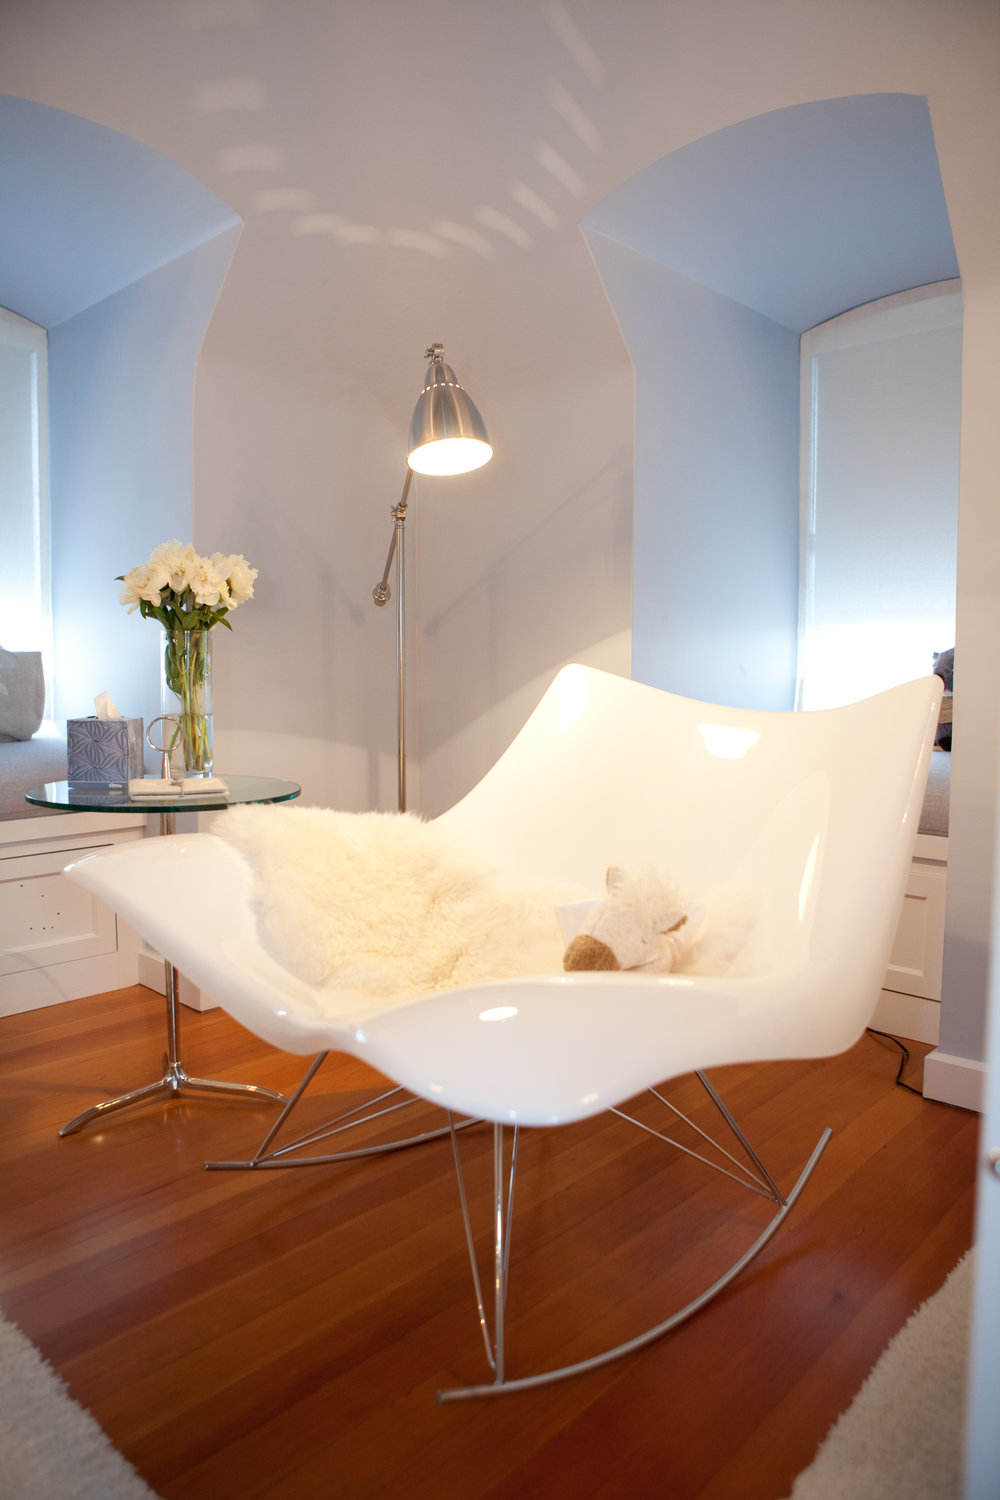 nursery, white, hardwood floor, sitting area, nursing chair, fur, lighting